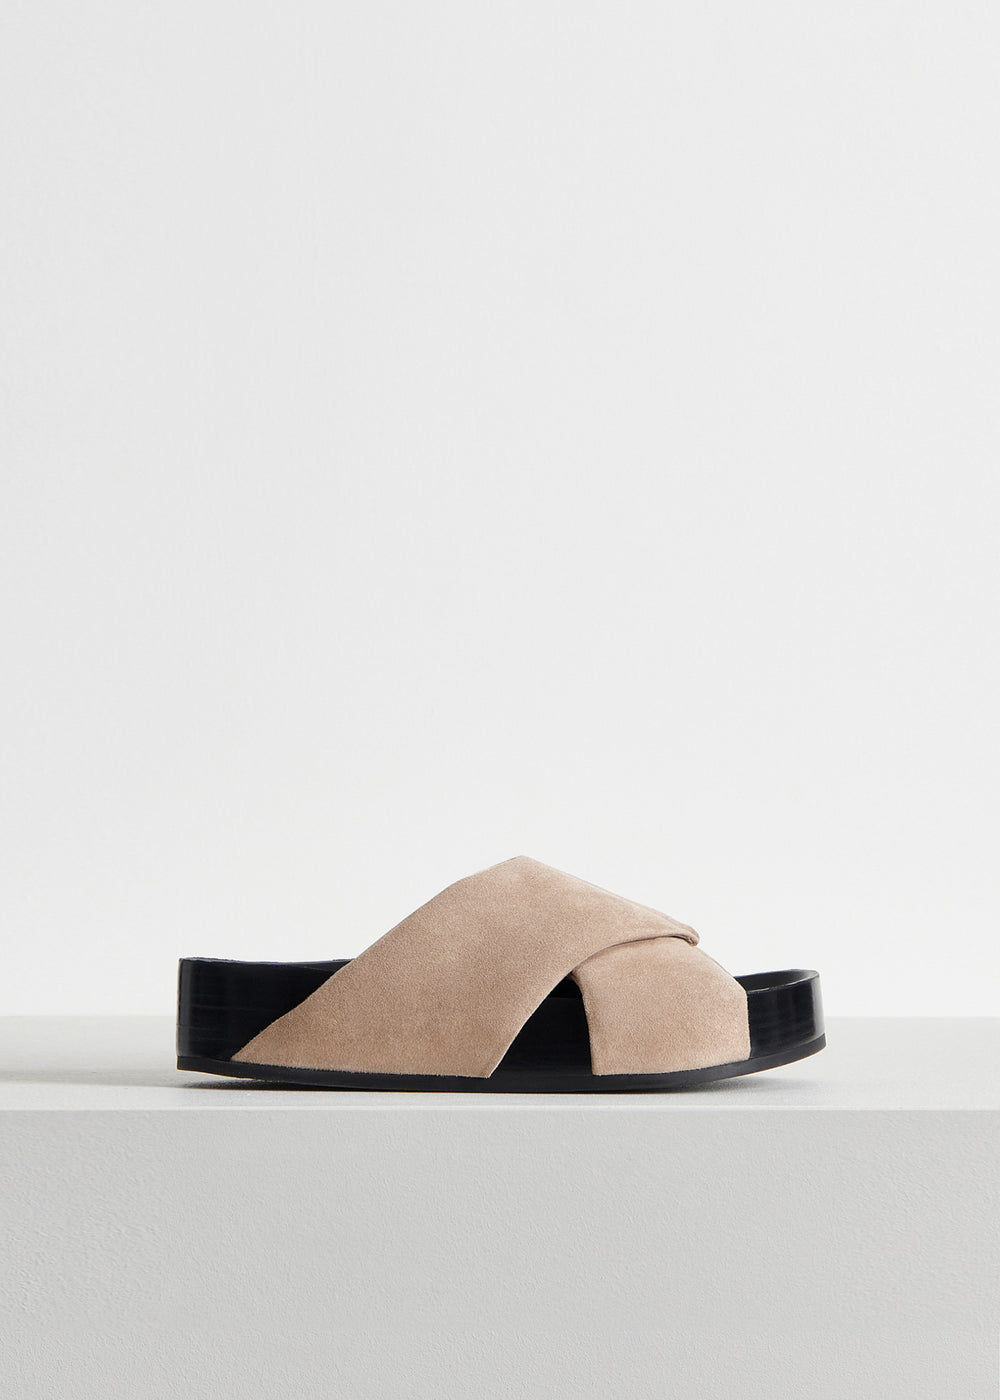 Slide Sandal in Suede - Olive in Sand by Co Collections